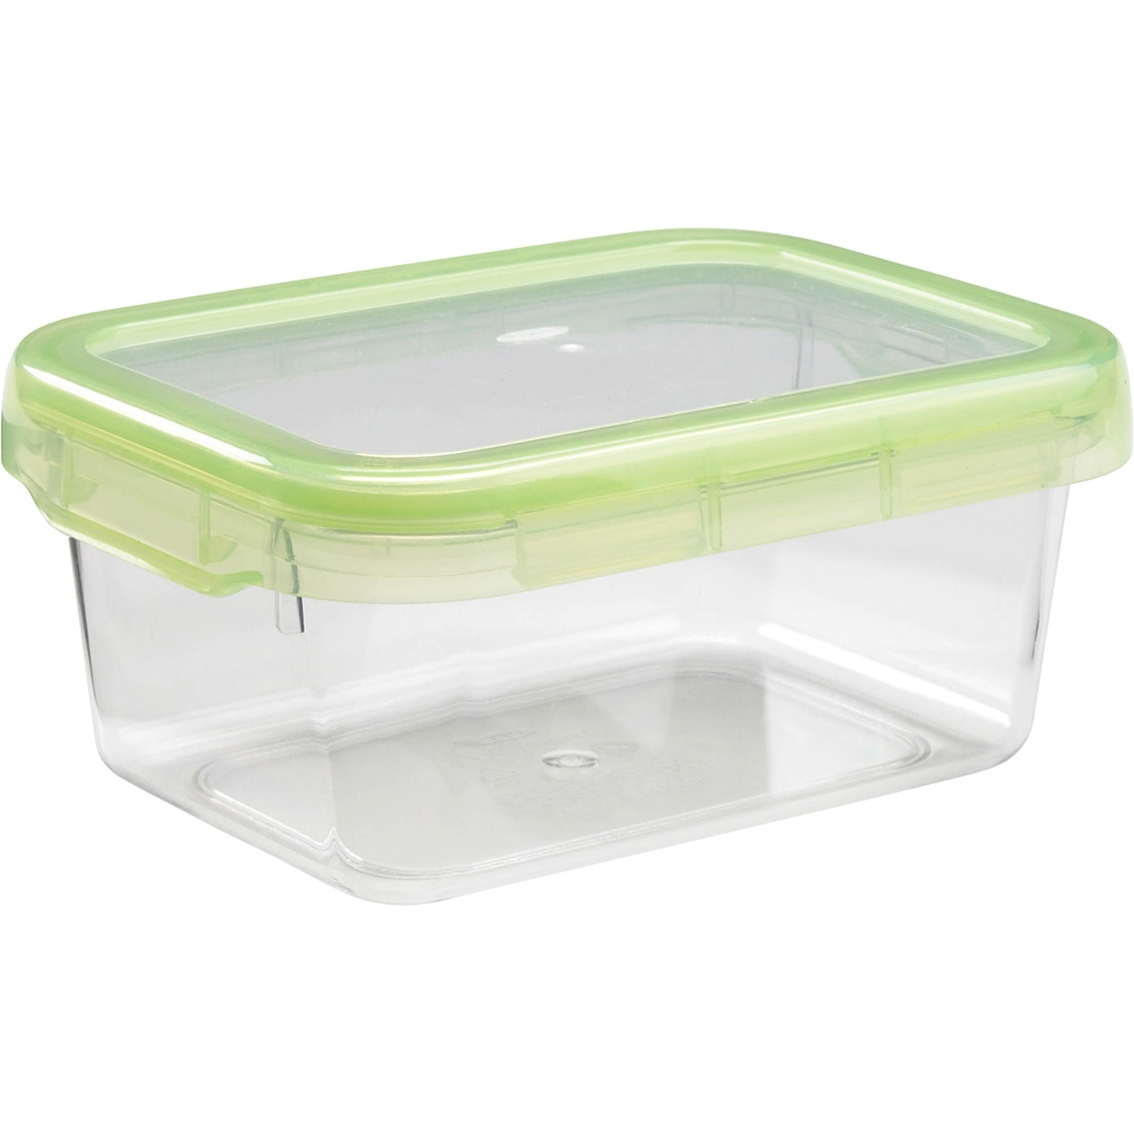 Oxo Good Grips Locktop 38 Cup Rectangular Food Storage Container